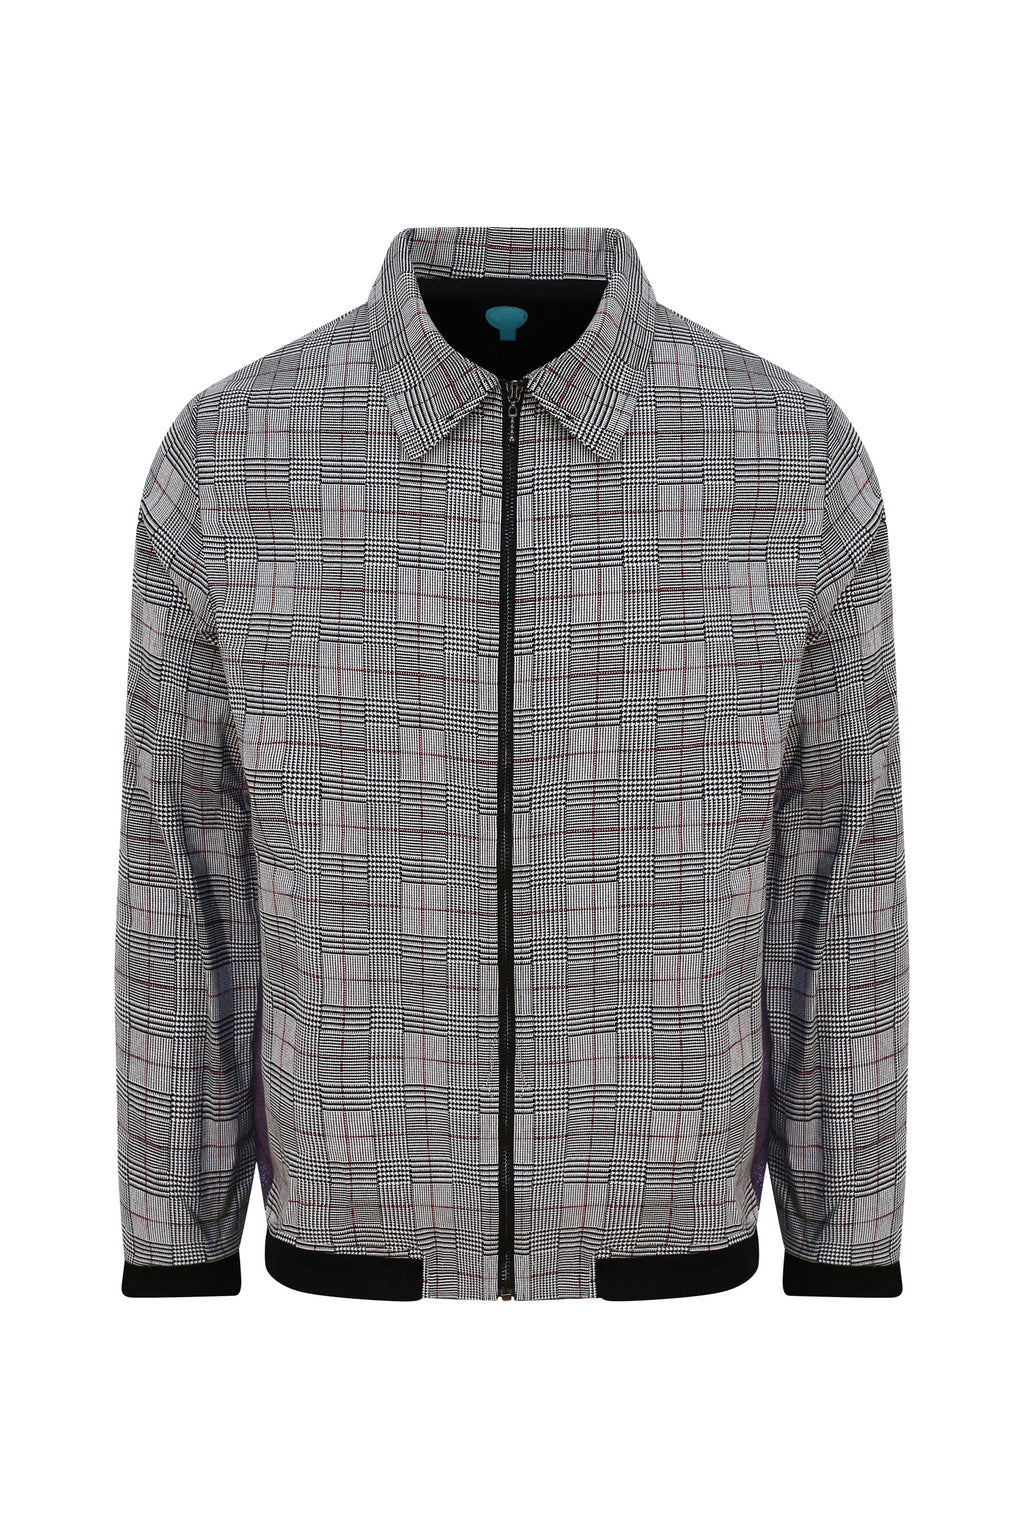 Adrian Schachter Grey Checkered Jacket